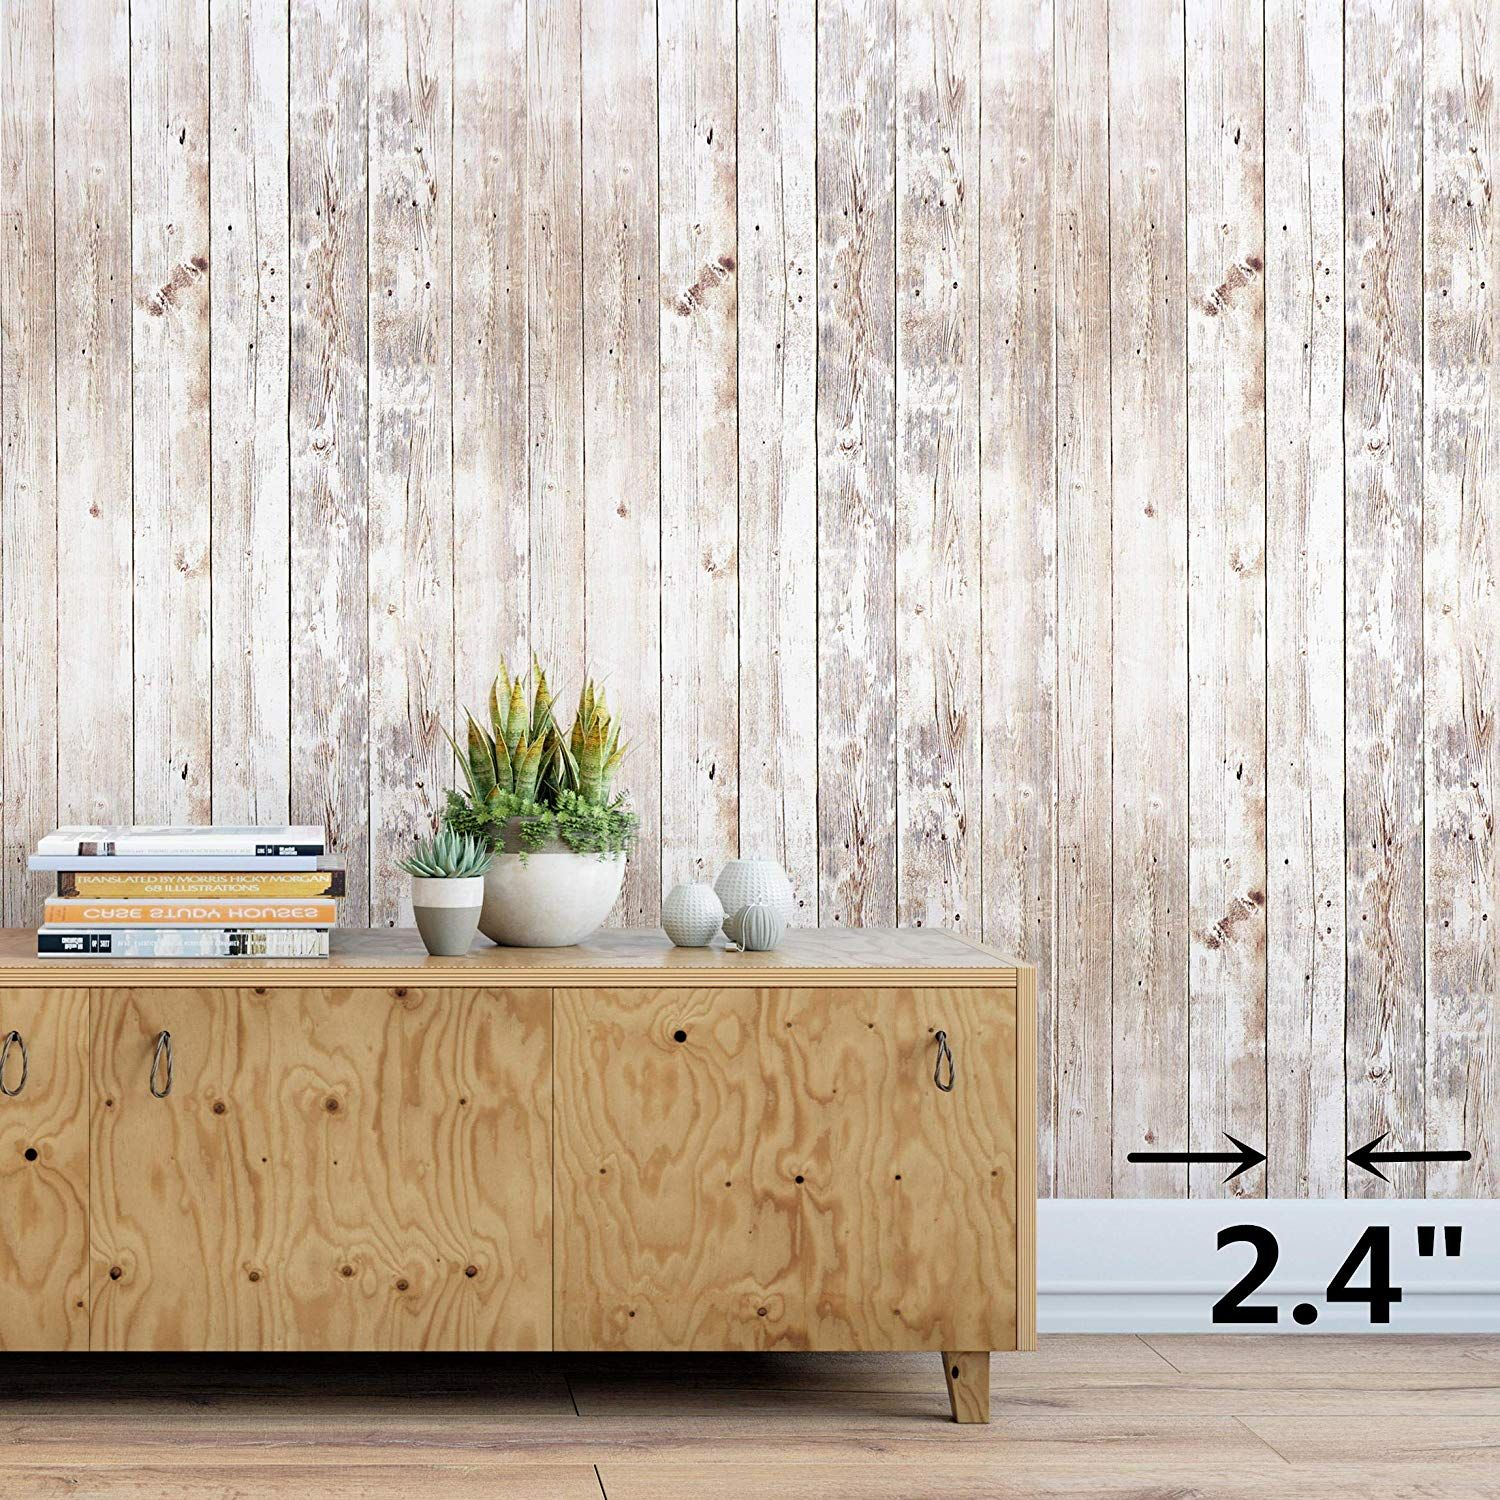 Wood Contact Paper 17 8 X 16 4 Wood Peel And Stick Wallpaper Self Adhesive Removable Wall Distressed Wood Wallpaper Distressed Wood Wall Wood Plank Wallpaper